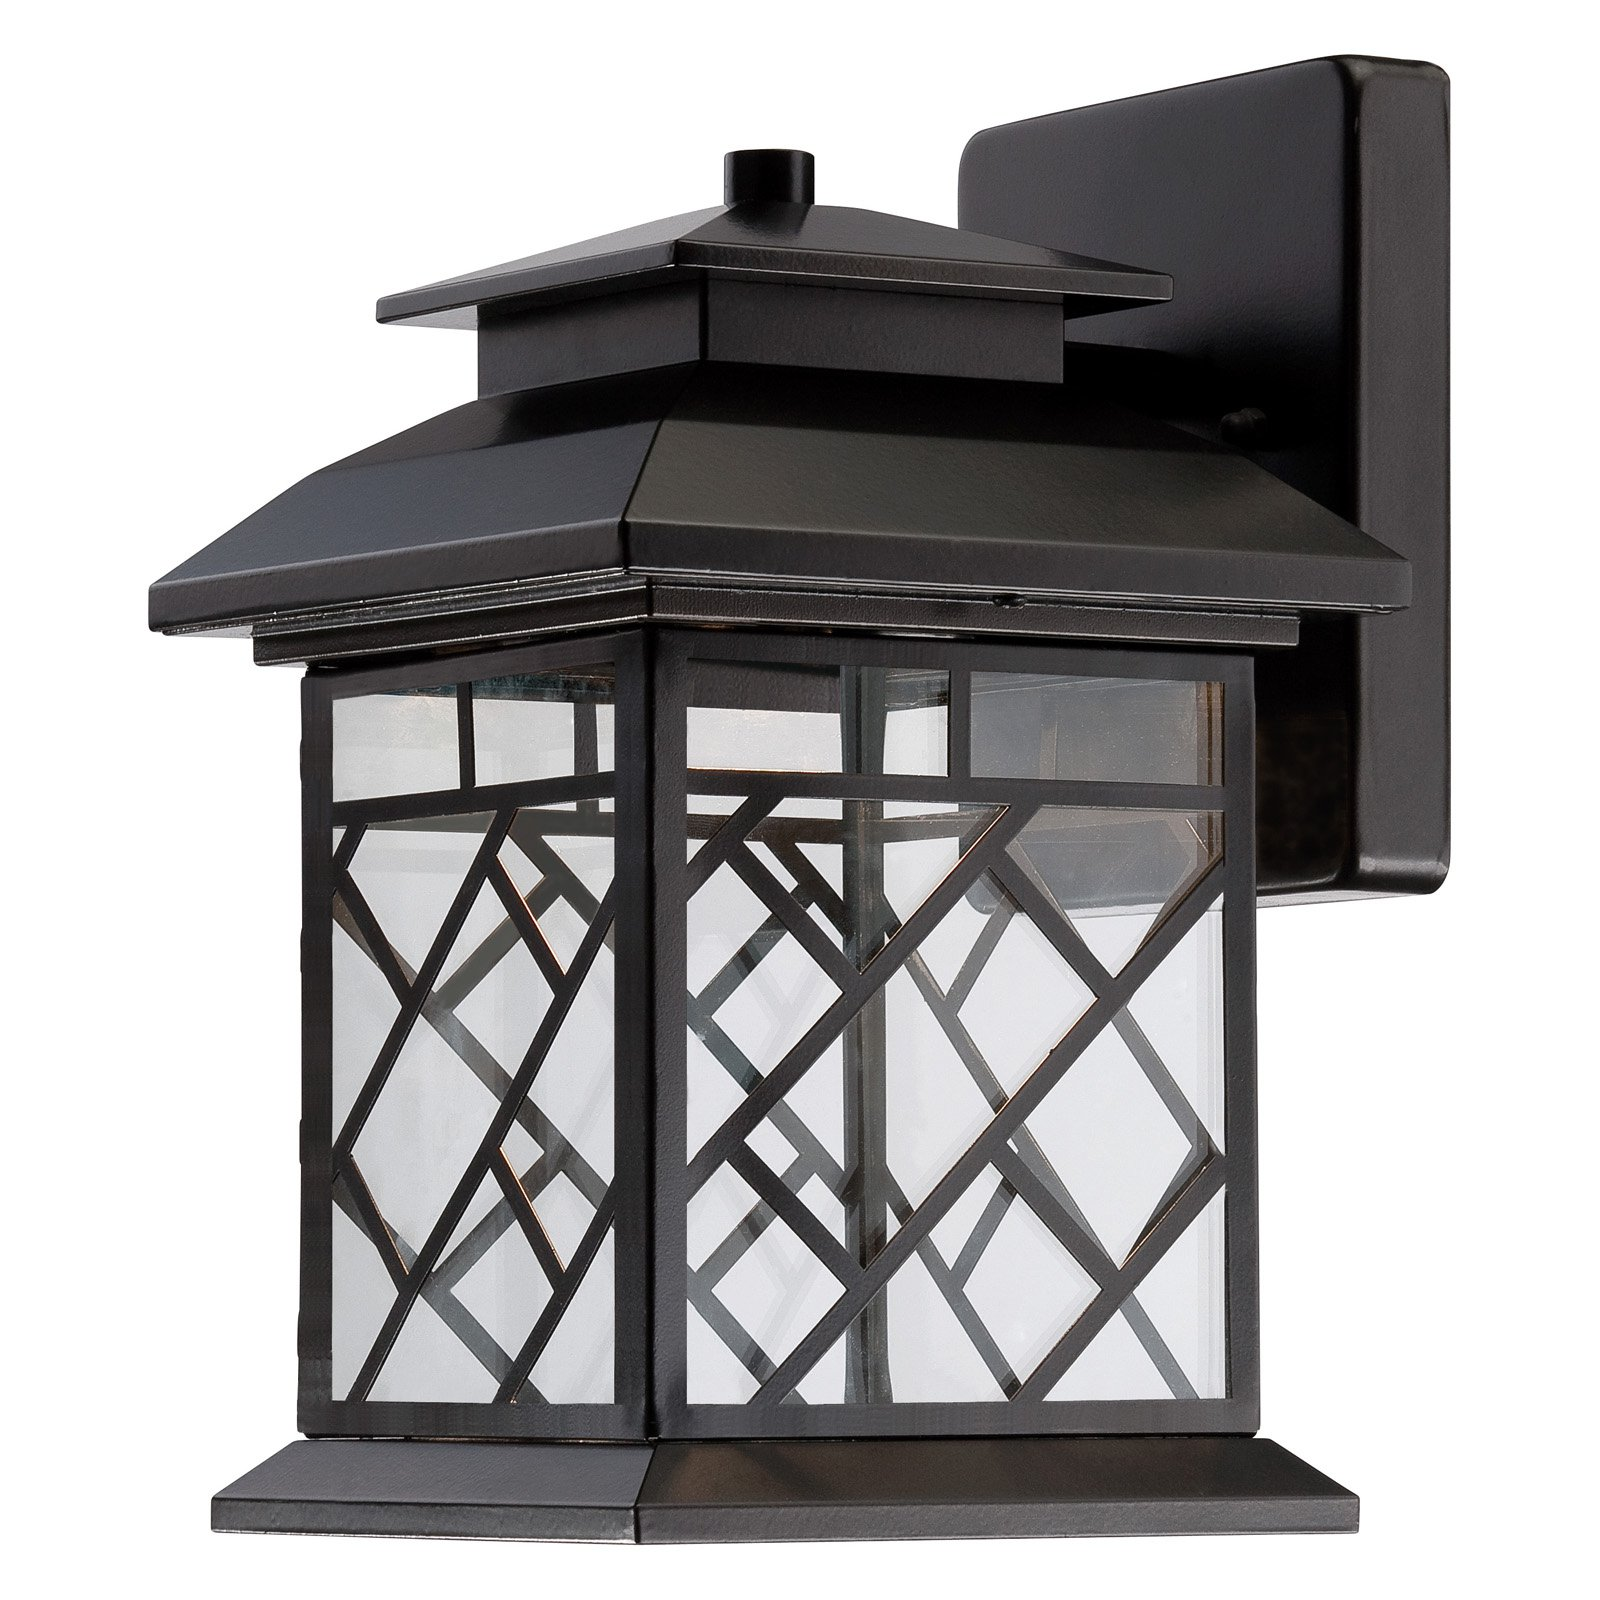 Designers Fountain Outdoor Woodmere LED22321 Wall Lantern - Oil Rubbed Bronze